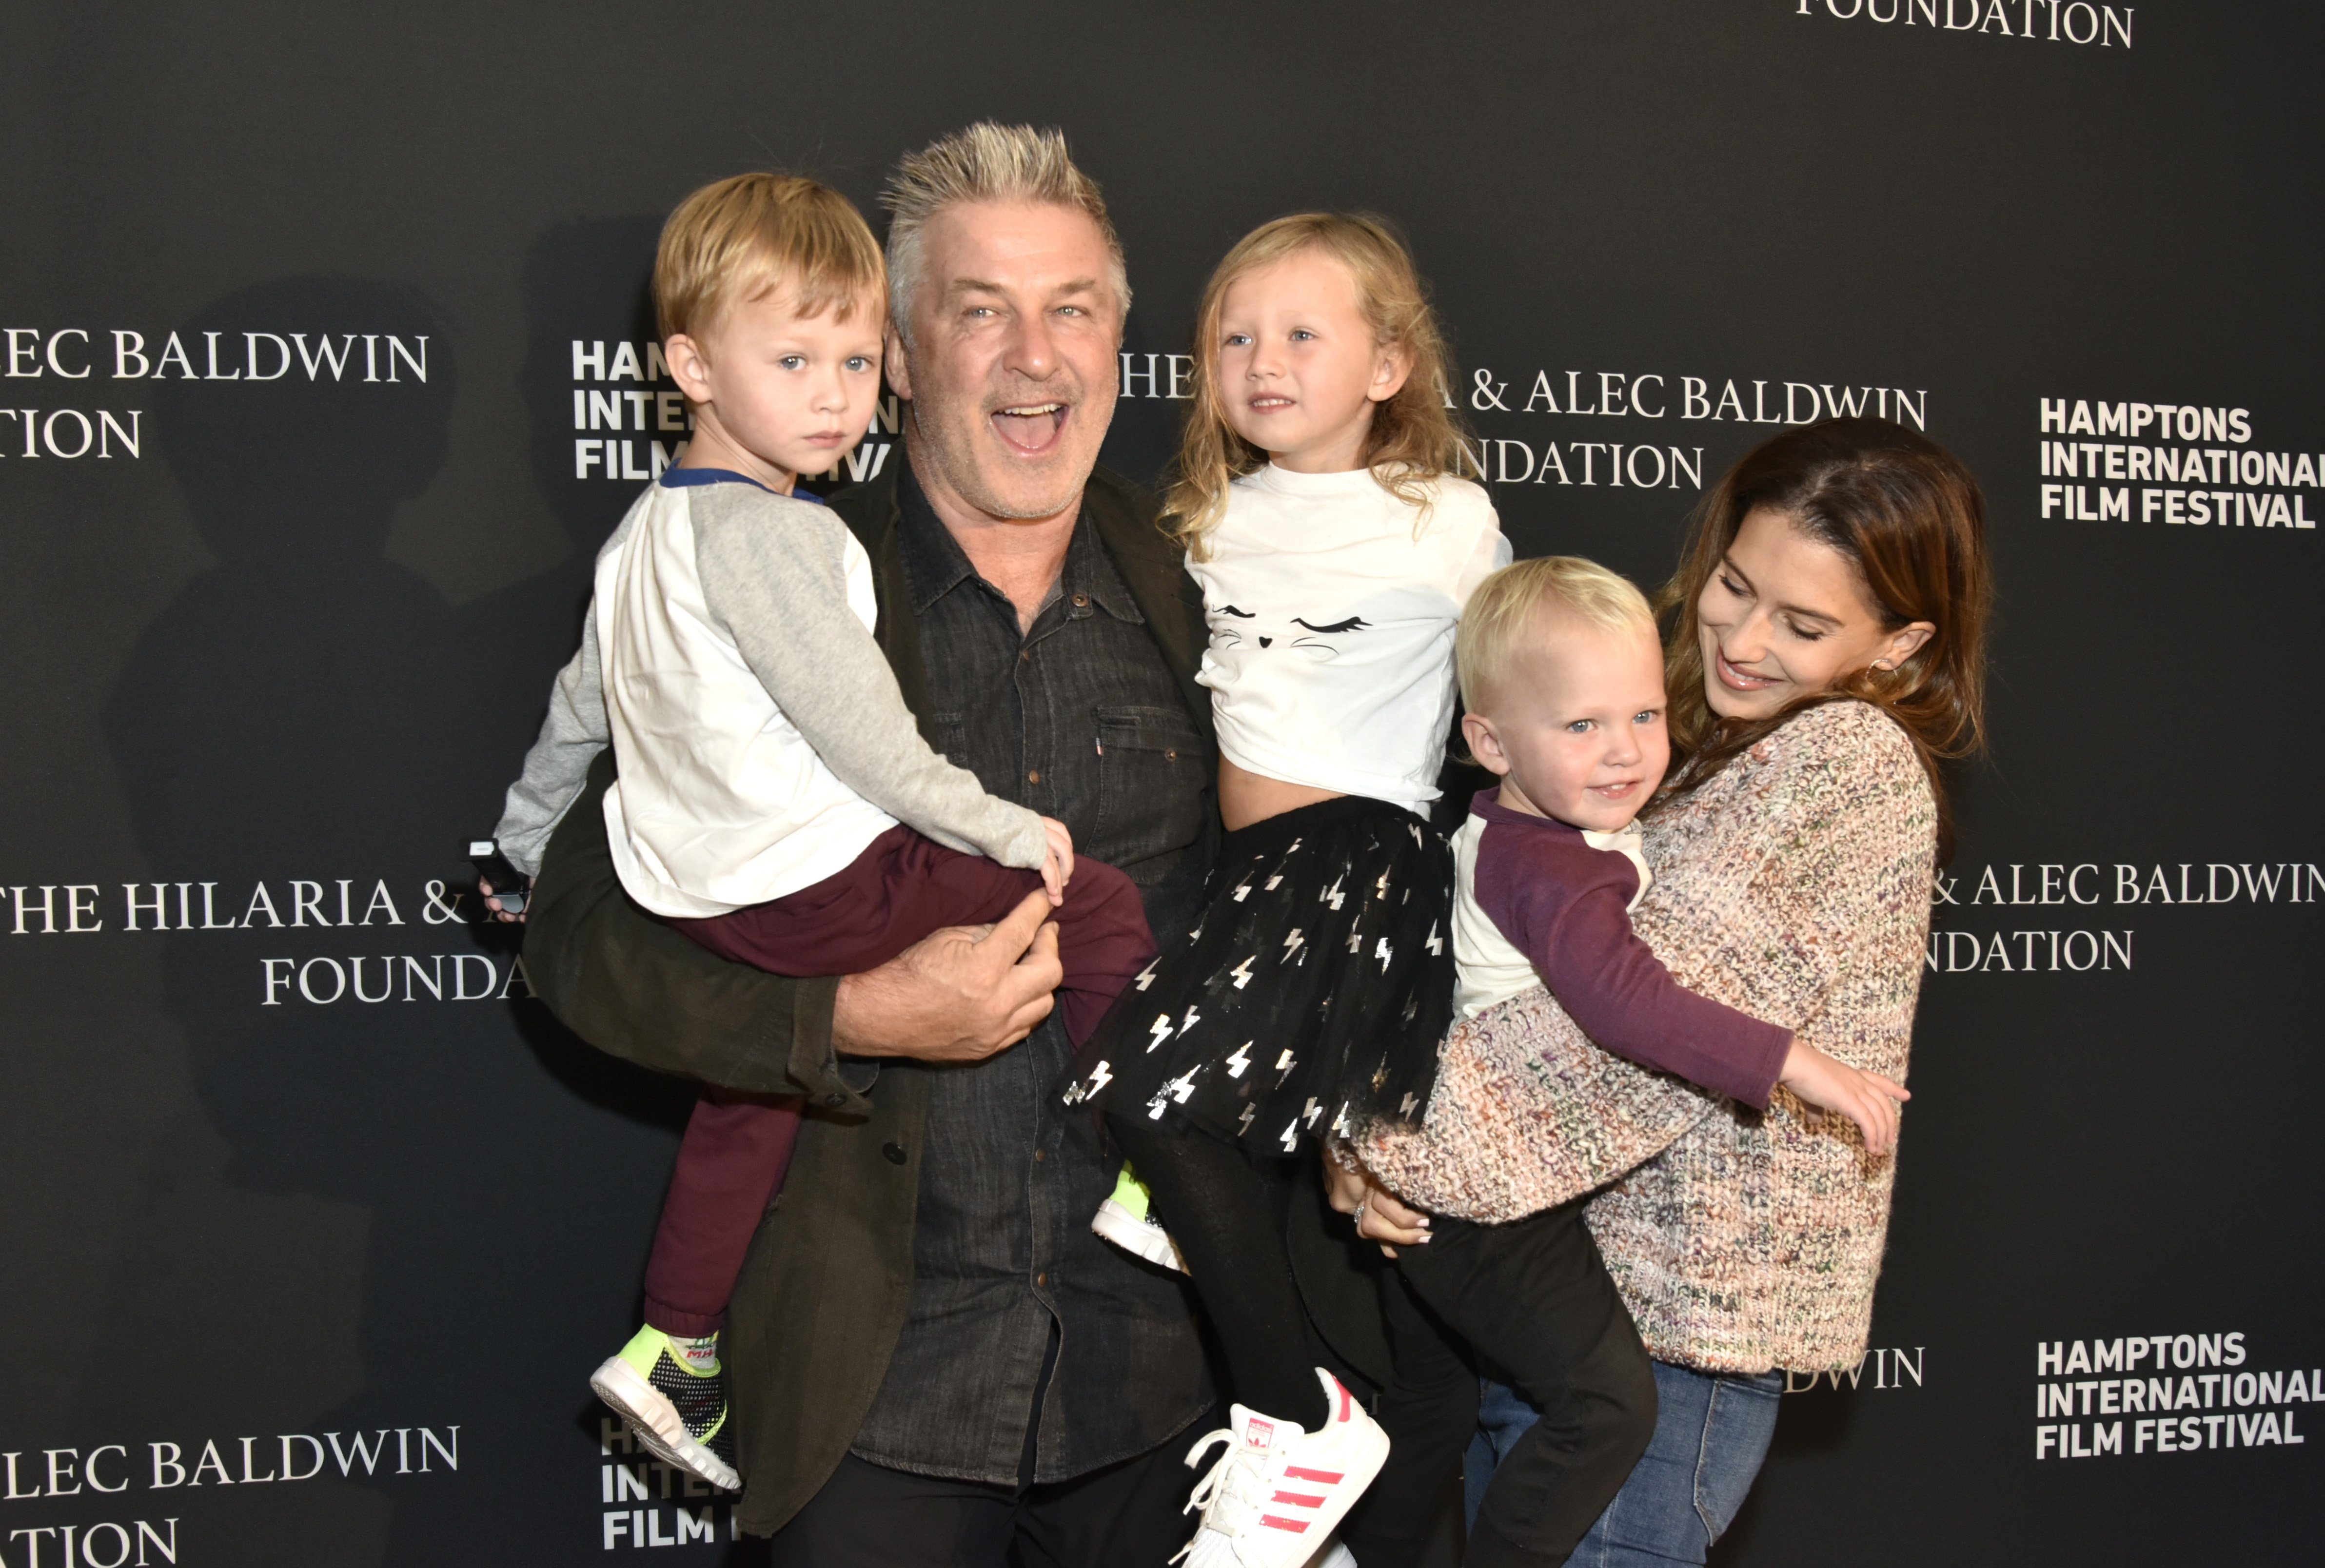 Image Source: Getty Images/Alec and his family